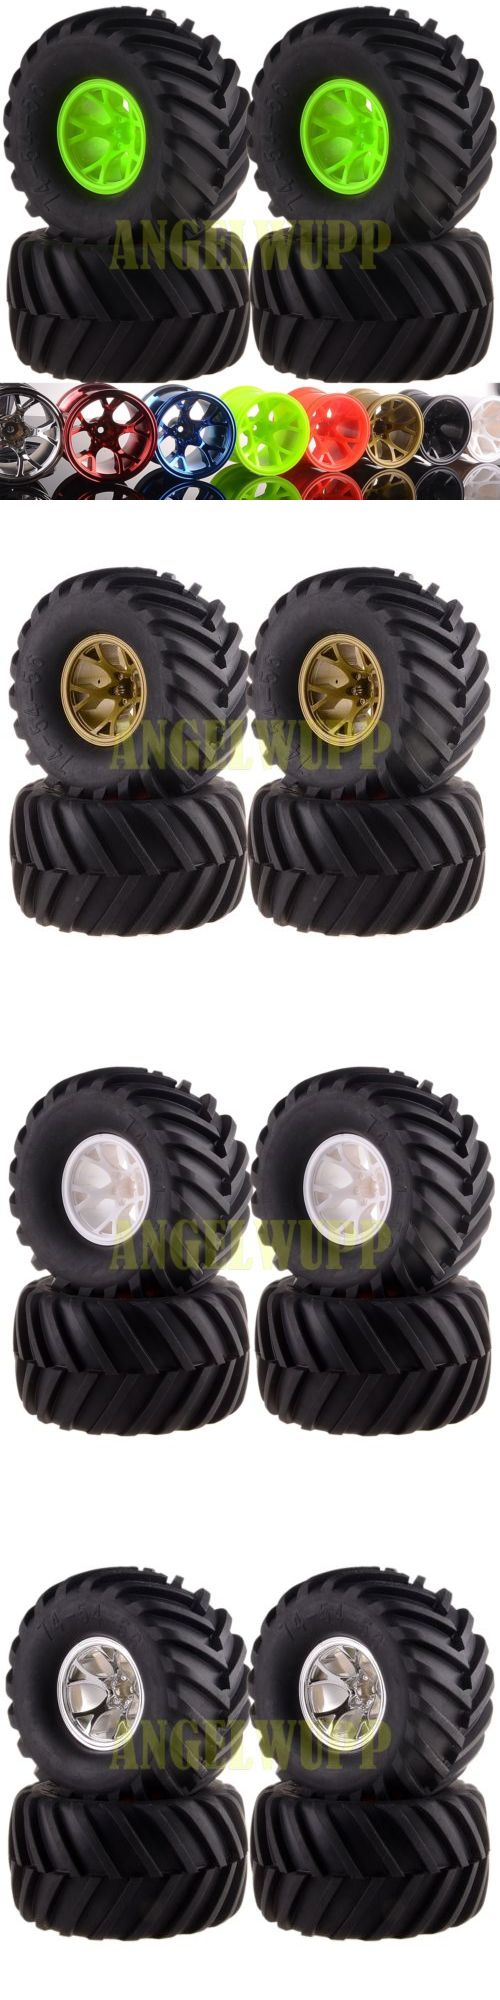 Radio Control 51029: Rc 1 10 Off Road Monster Truck Wheel Rimandtyre Tires 6009-3000 Hsp Hpi 8Colors -> BUY IT NOW ONLY: $35.91 on eBay!